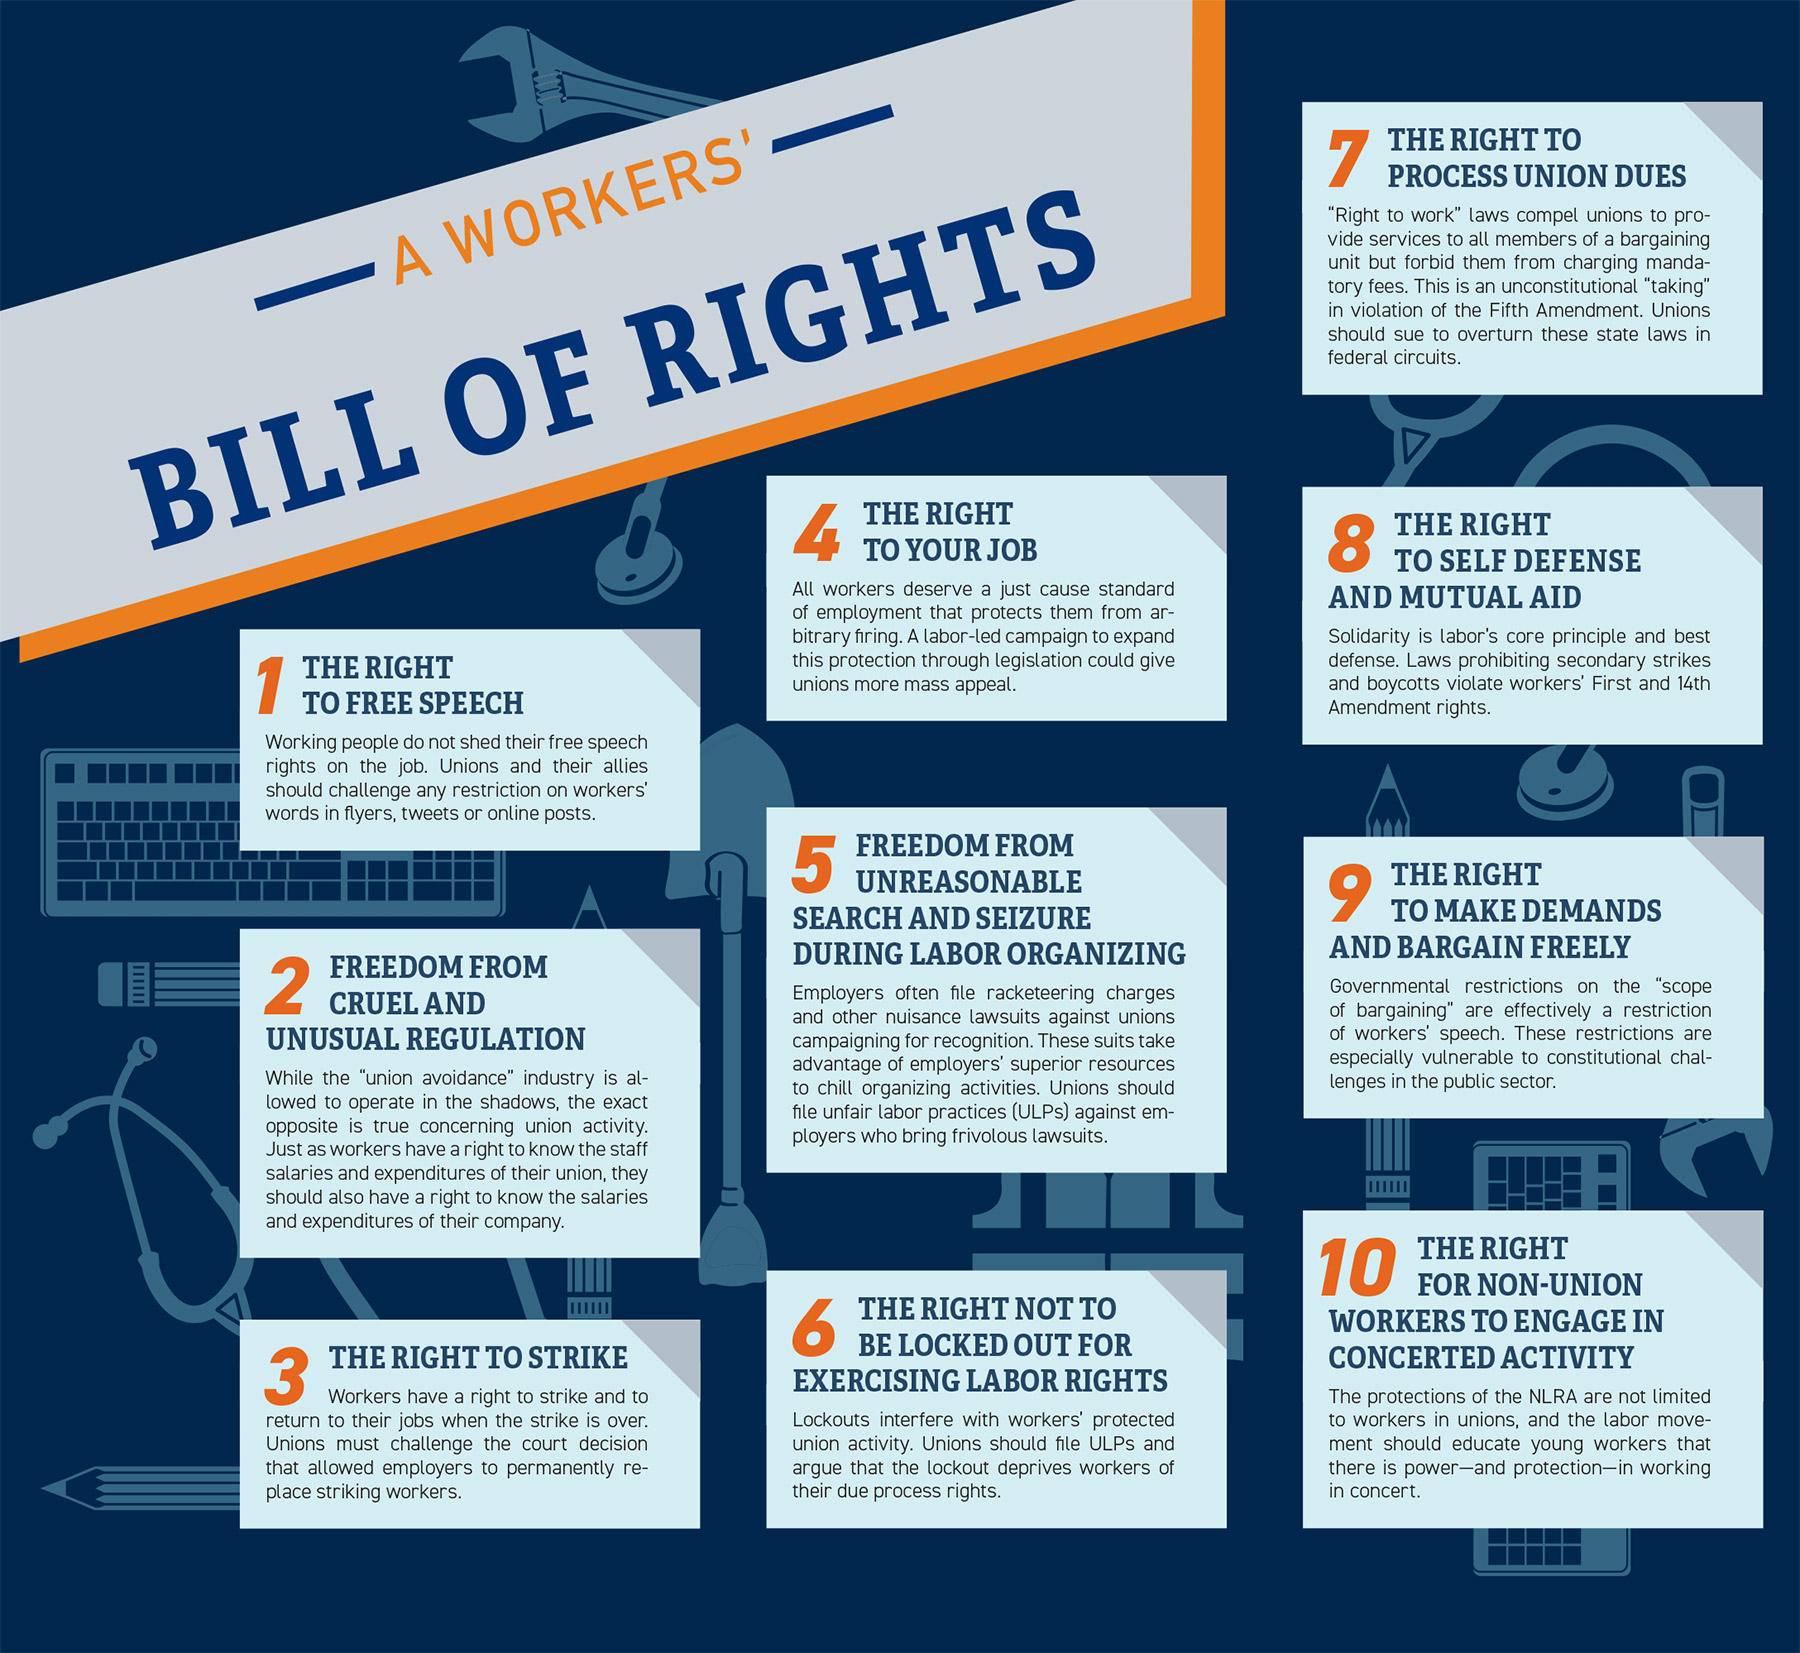 A New Bill Of Rights For Workers 10 Demands The Labor